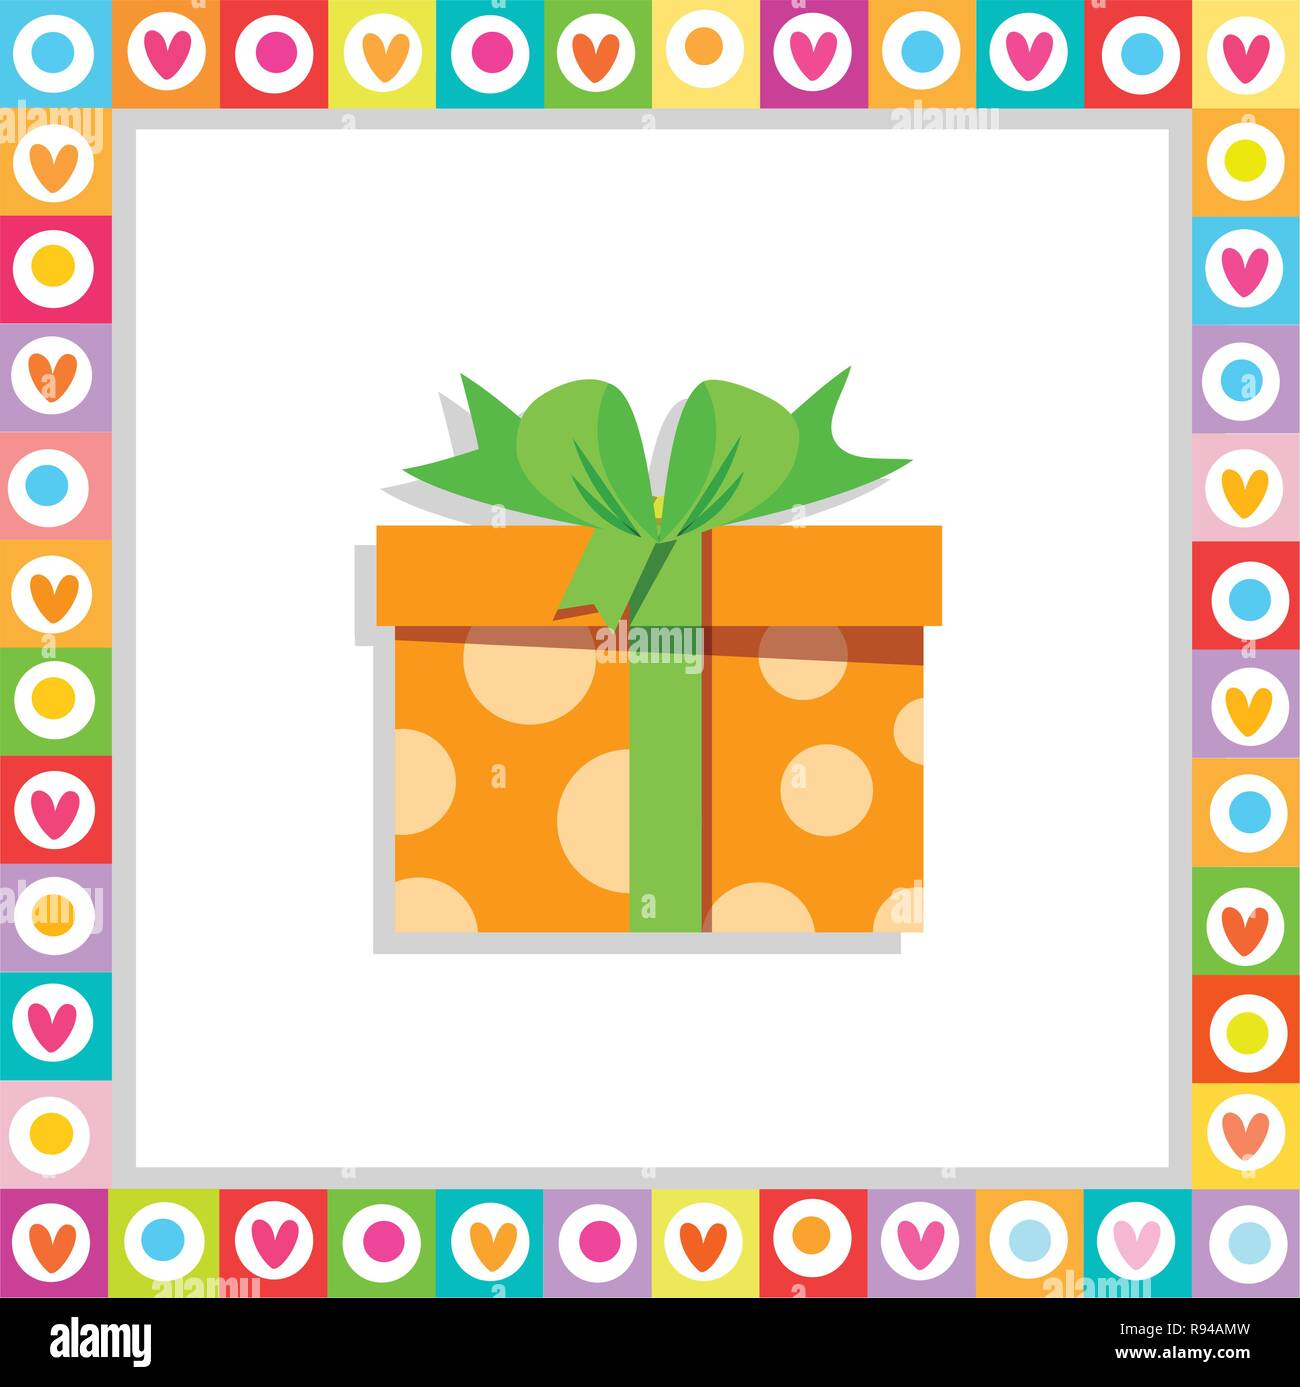 Vector illustration of cute cartoon orange gift box wrapped with festive bow framed with heart frame isolated. Present icon, anniversary logo, wedding - Stock Image